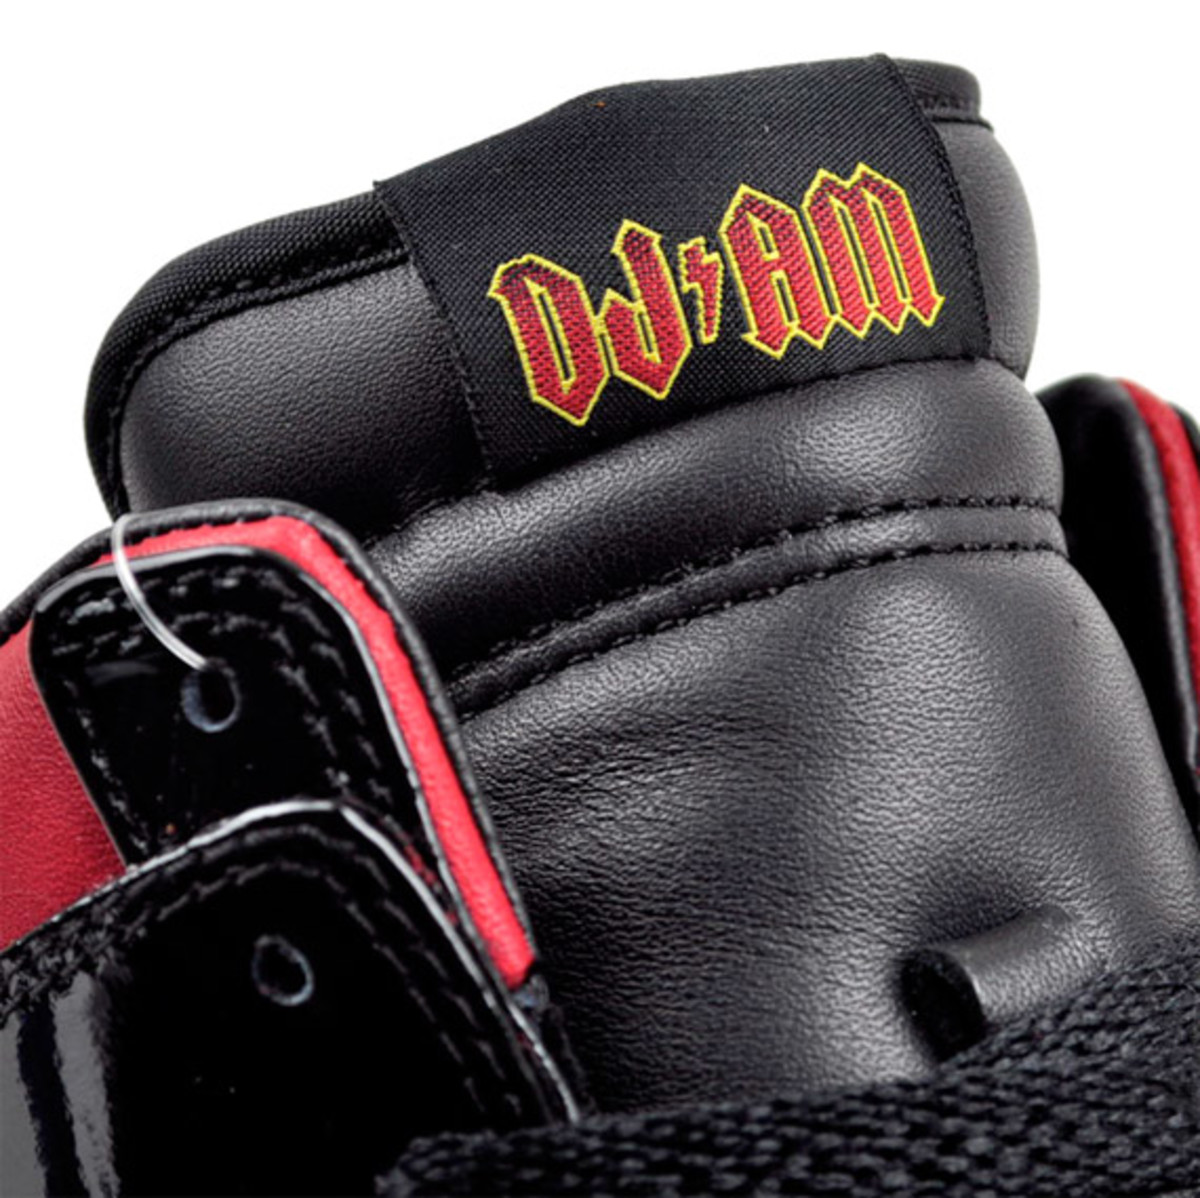 dj-am-nike-dunk-01